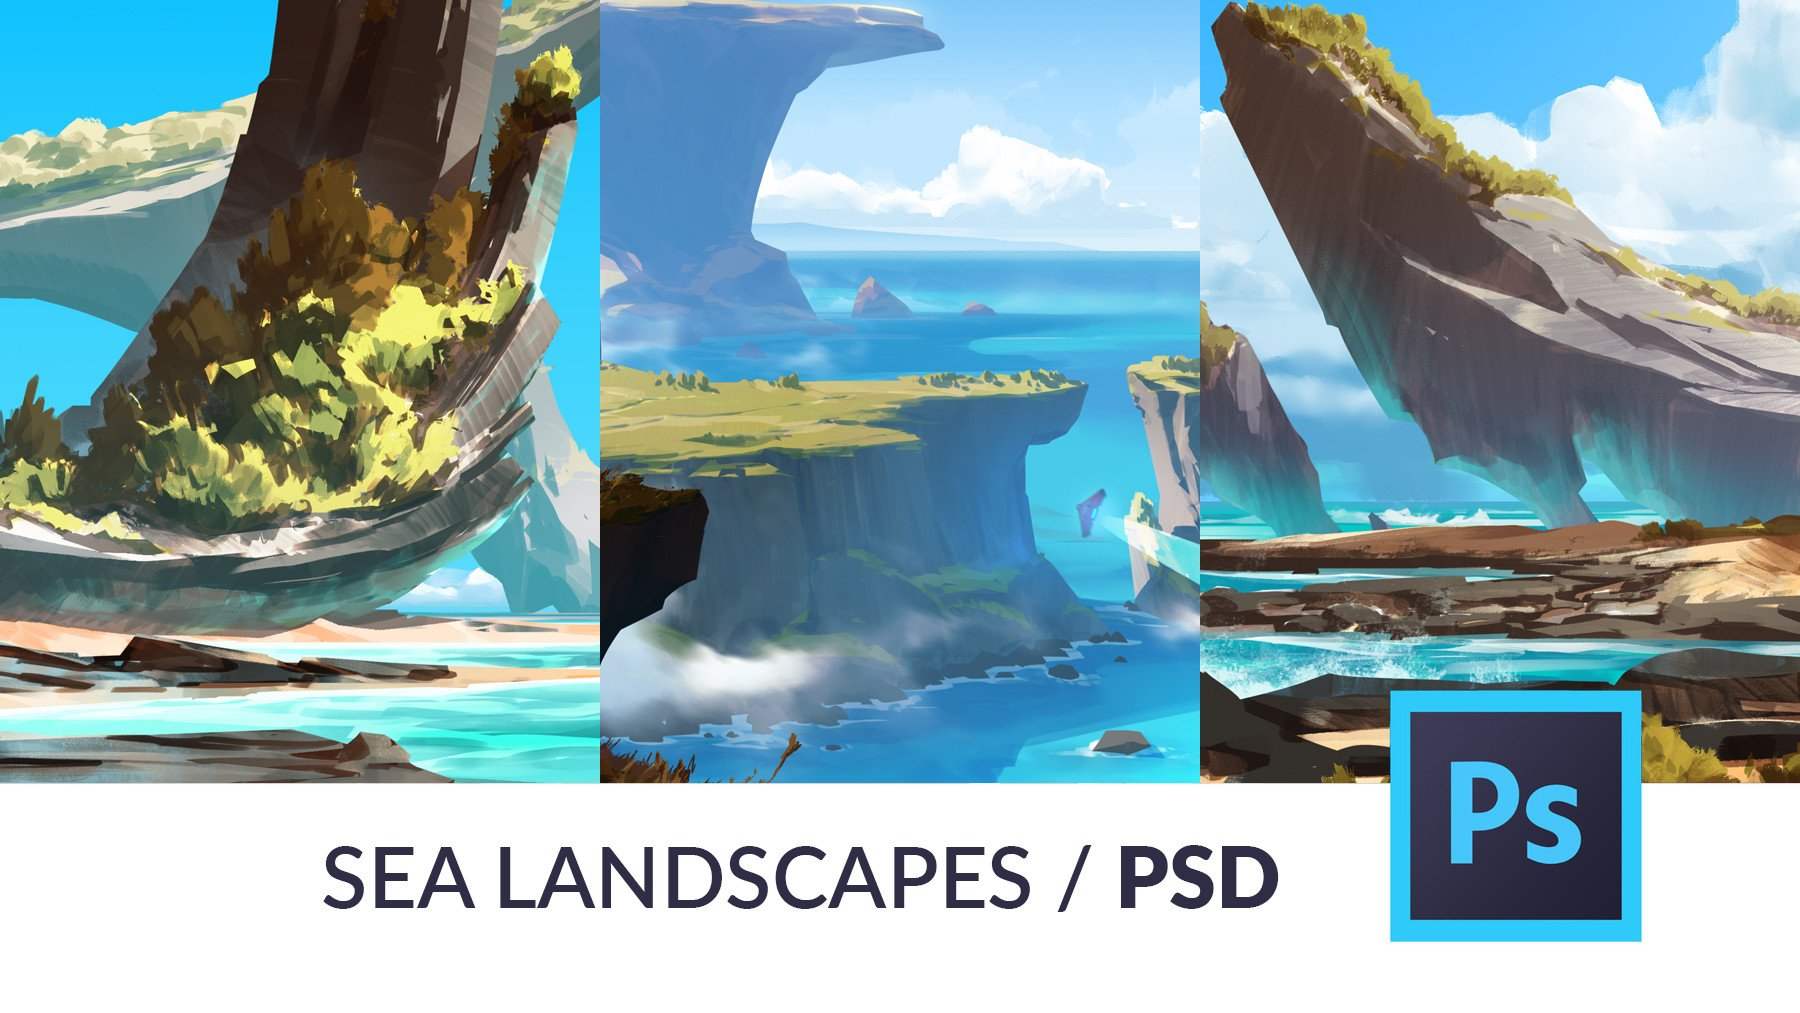 overview of the Sea Landscapes / PSD pack